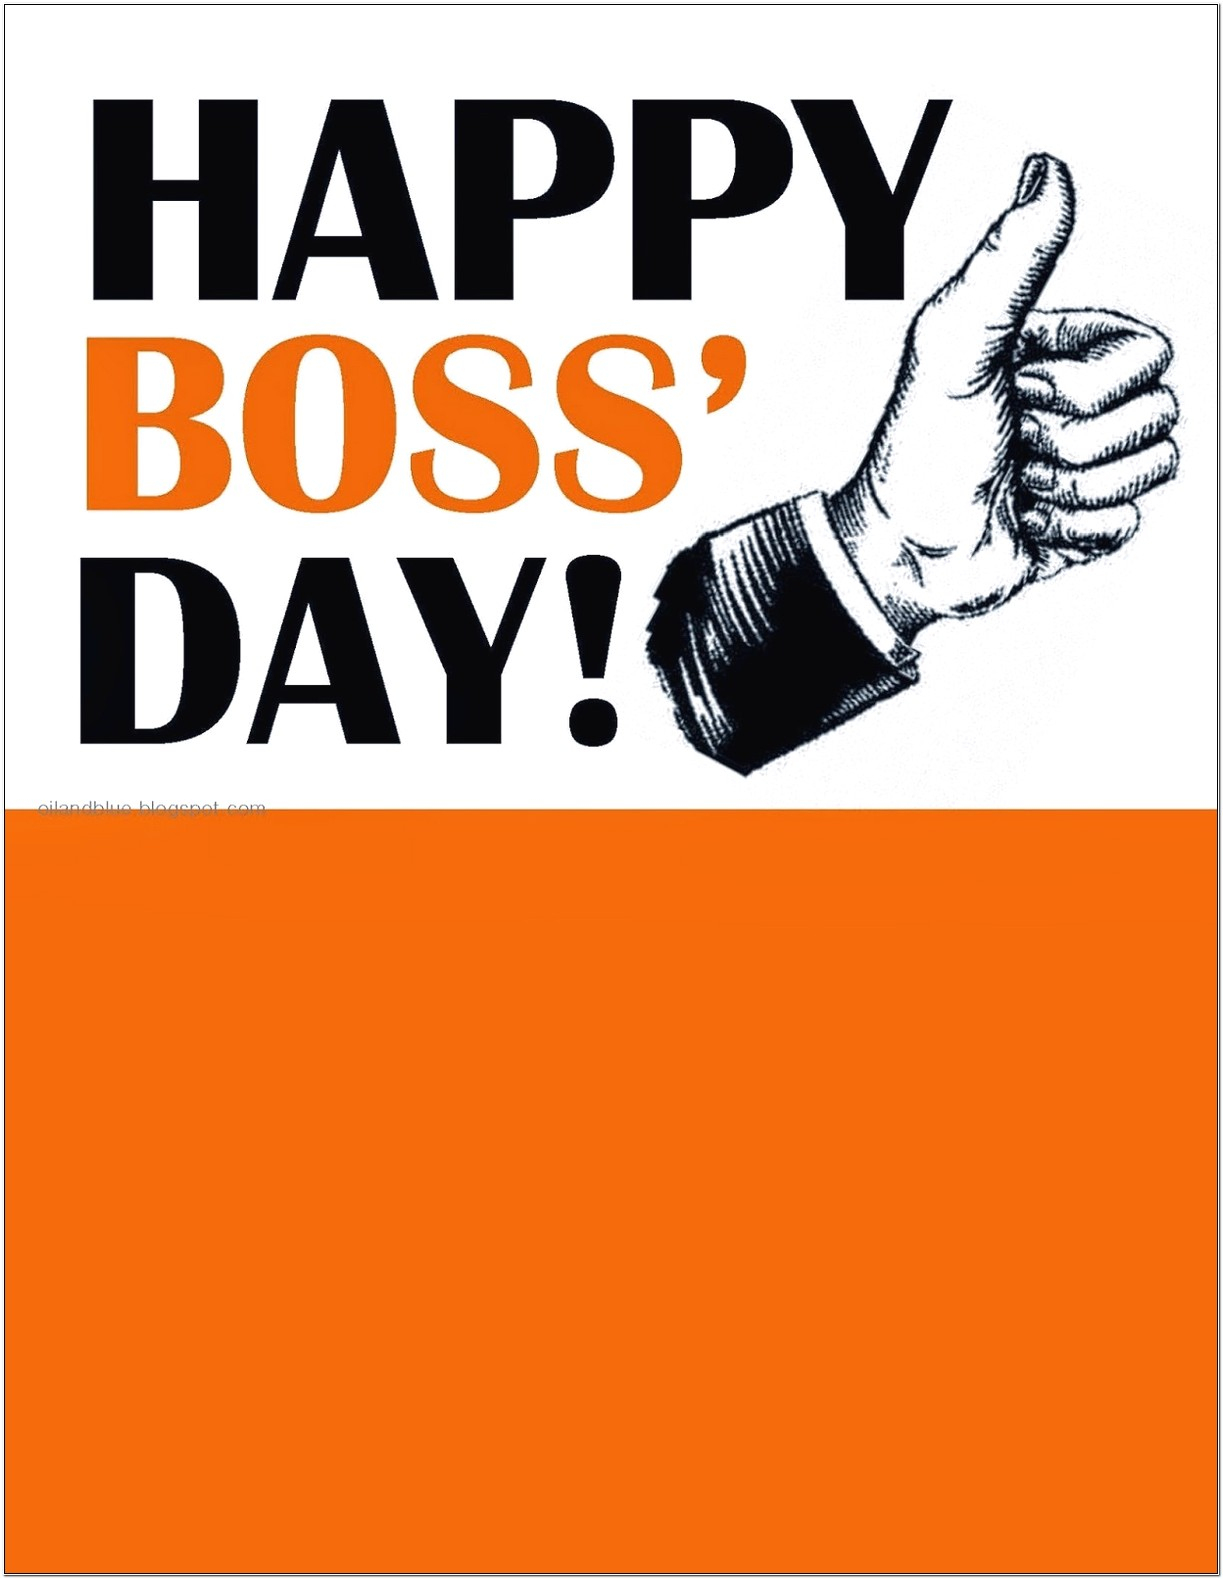 Funny Boss Day Cards Free Printable - Boss Day Cards Free Printable